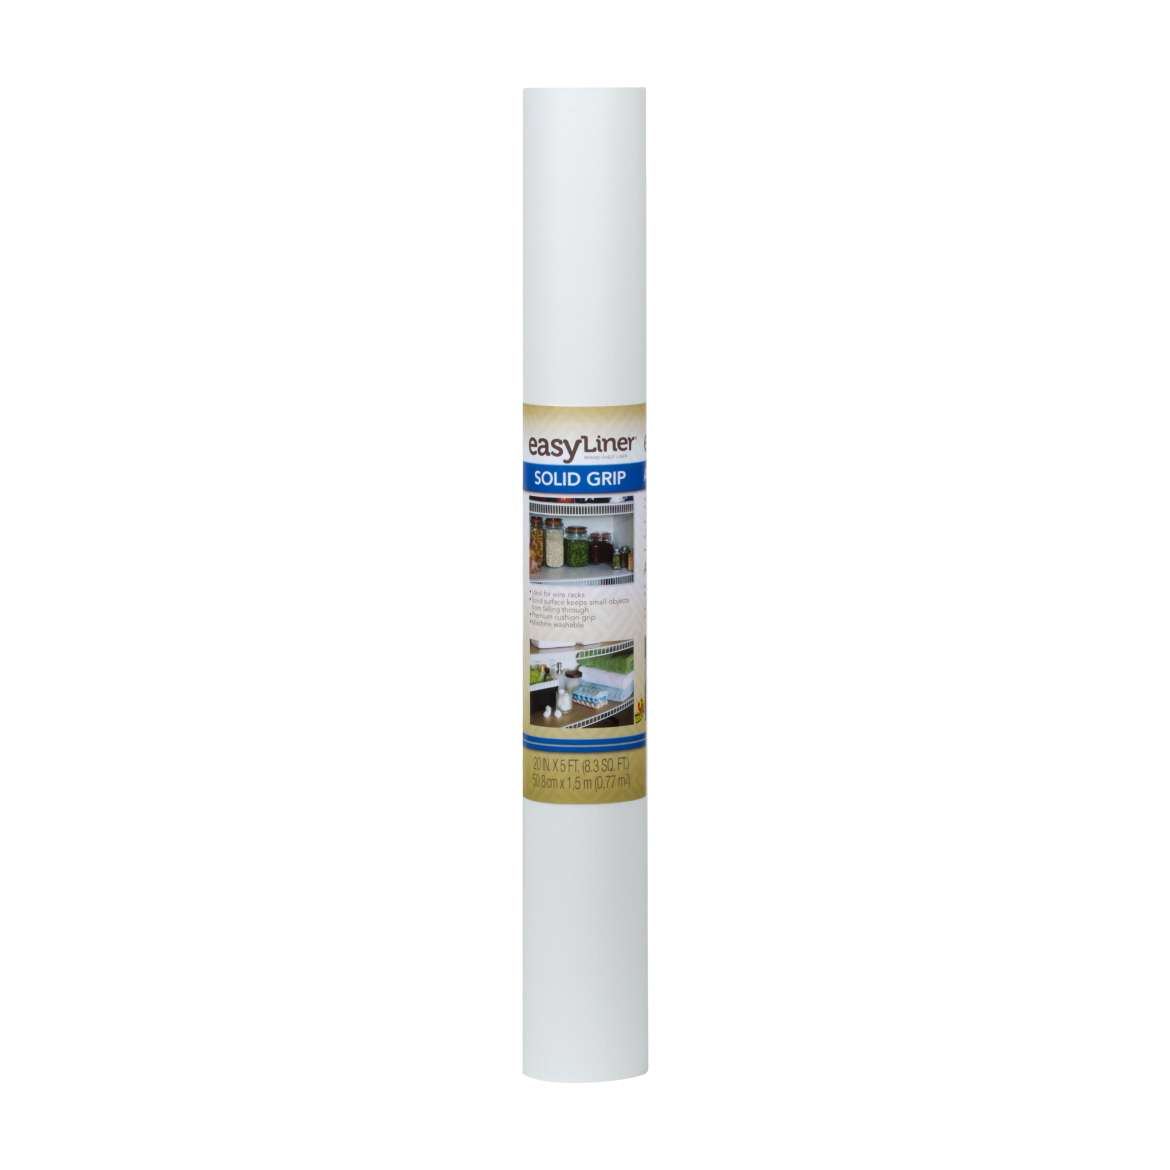 Solid Grip Easy Liner® Brand Shelf Liner - White, 20 in. x 5 ft. Image